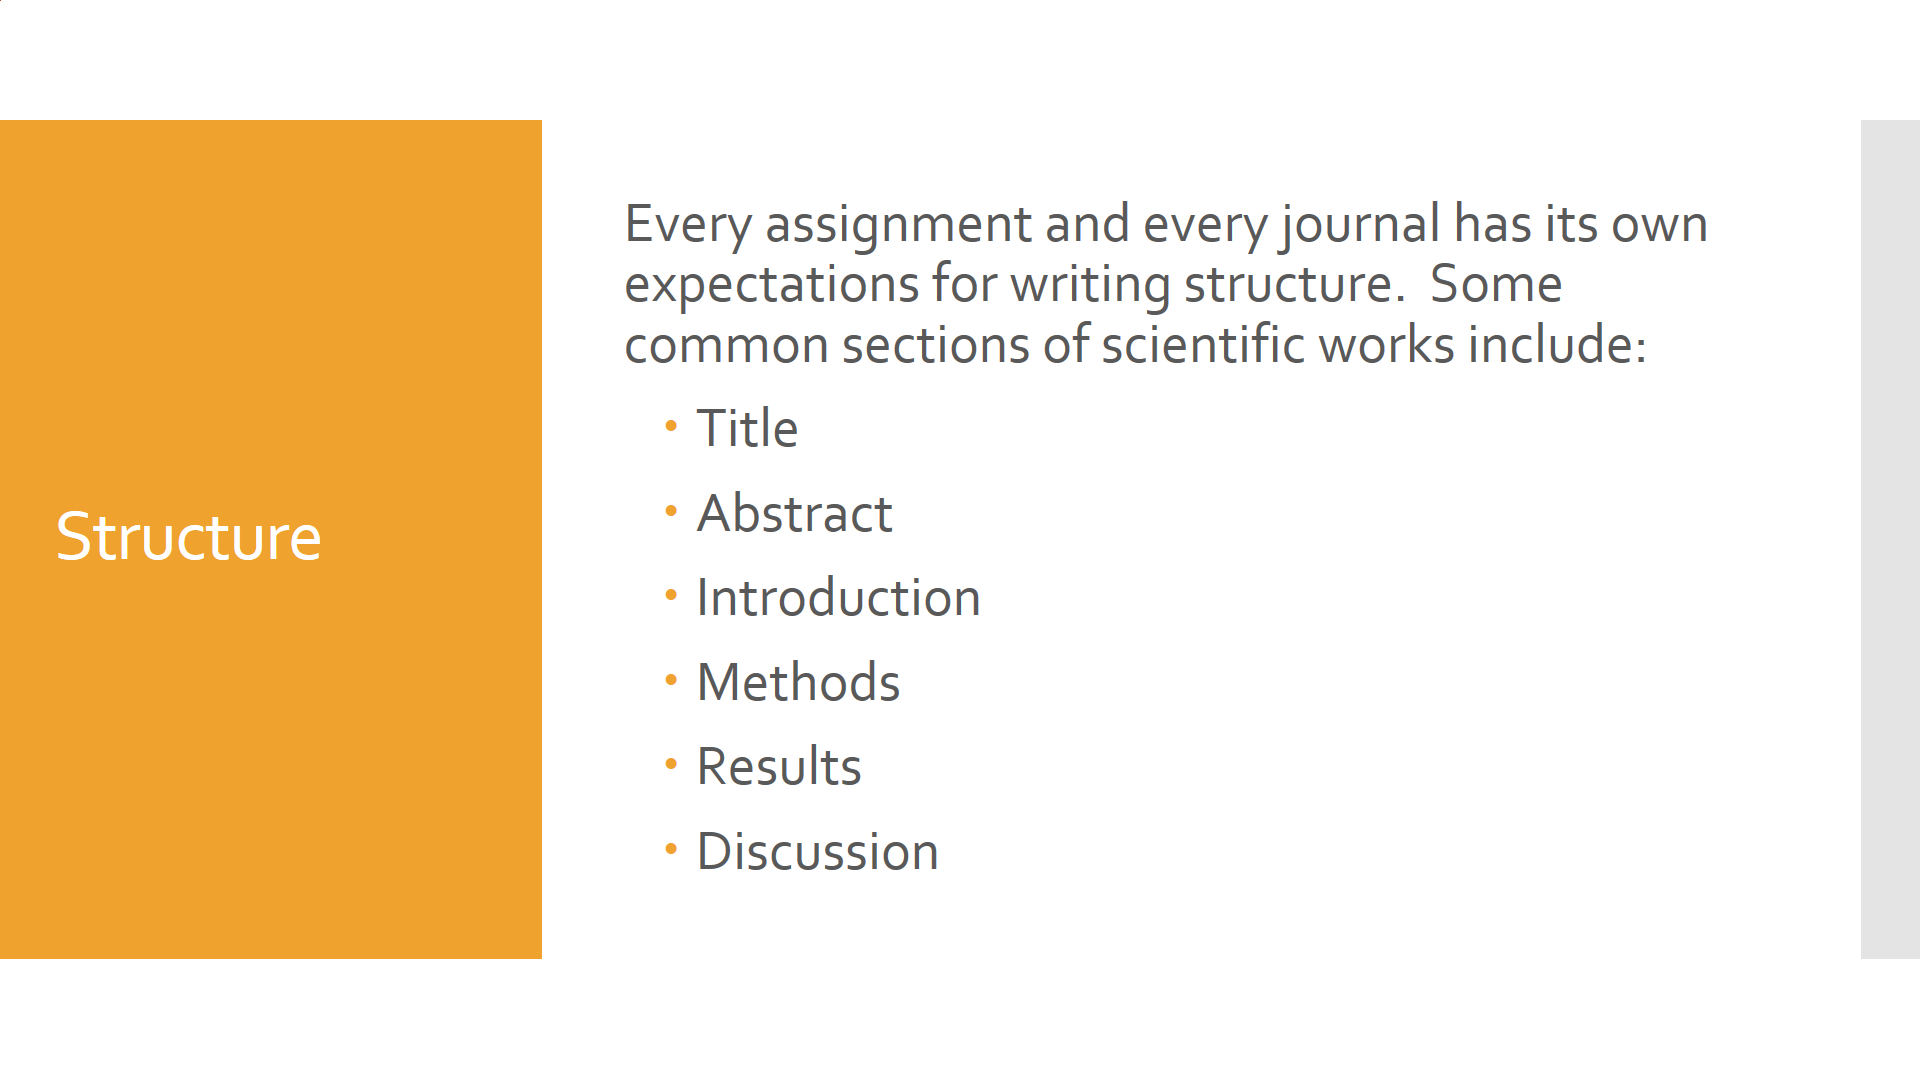 Outline of the structure of a scientific paper